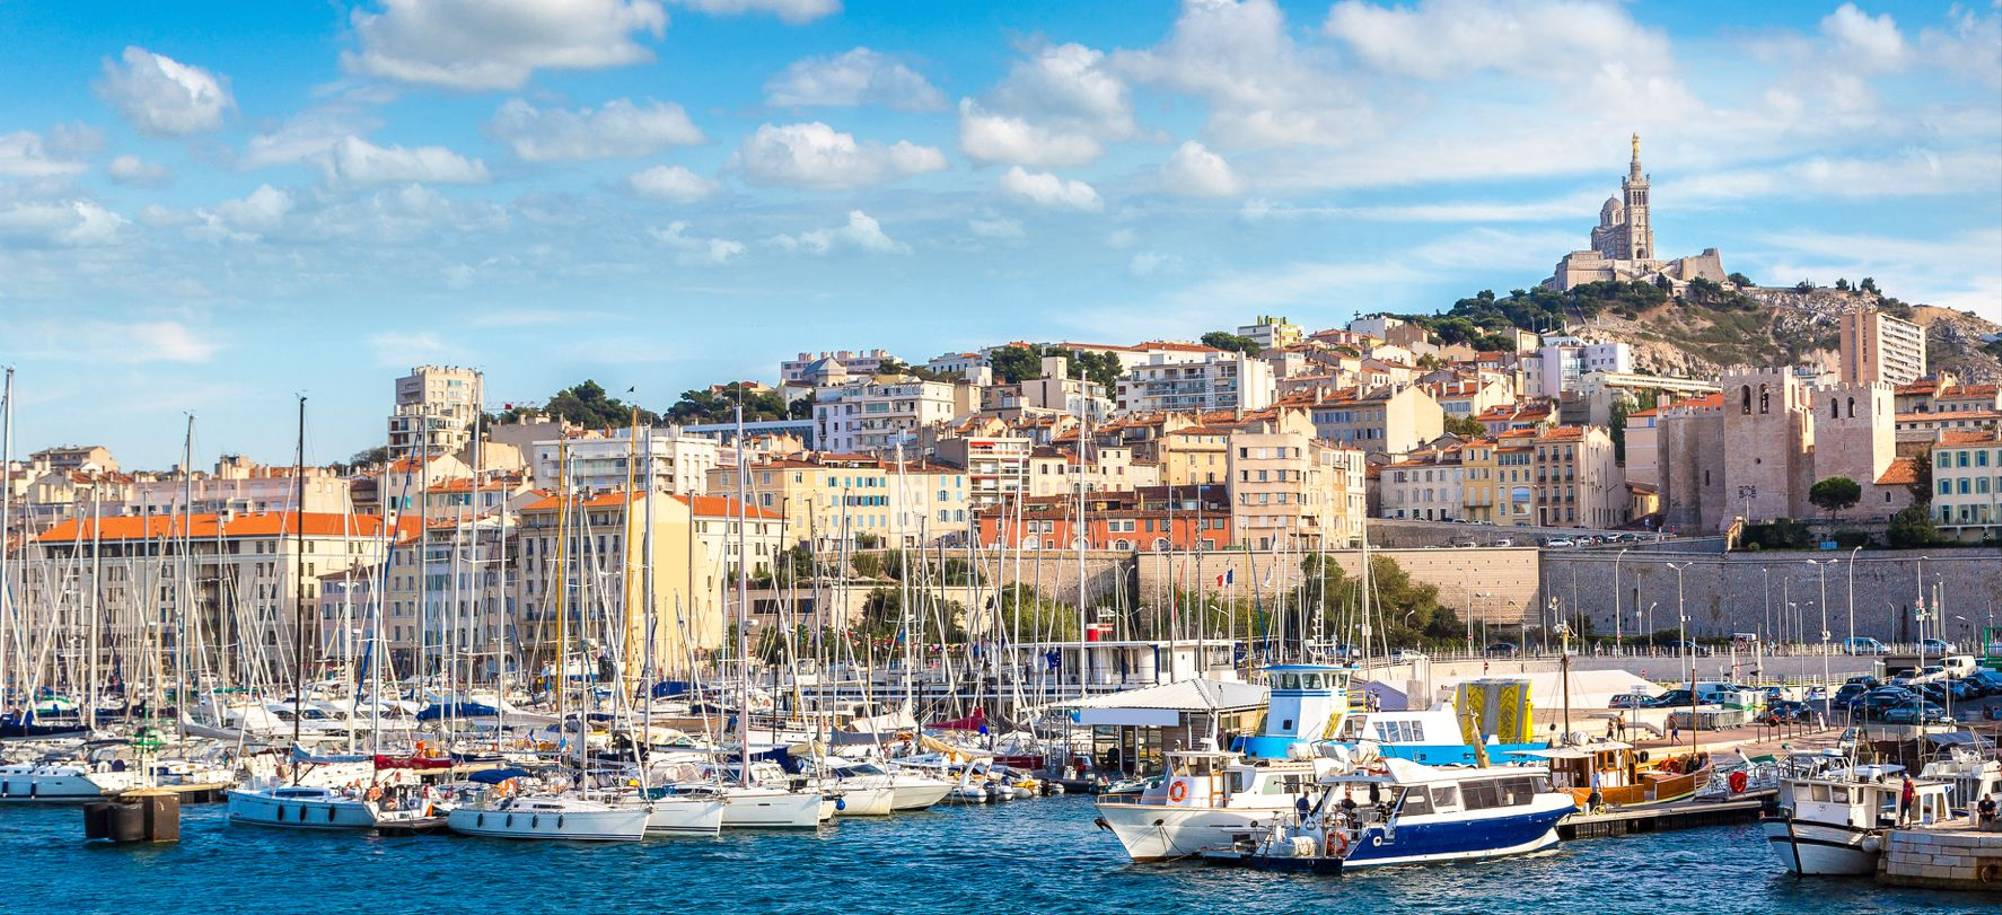 3 Day - Marseille, France - Itinerary Desktop.jpg